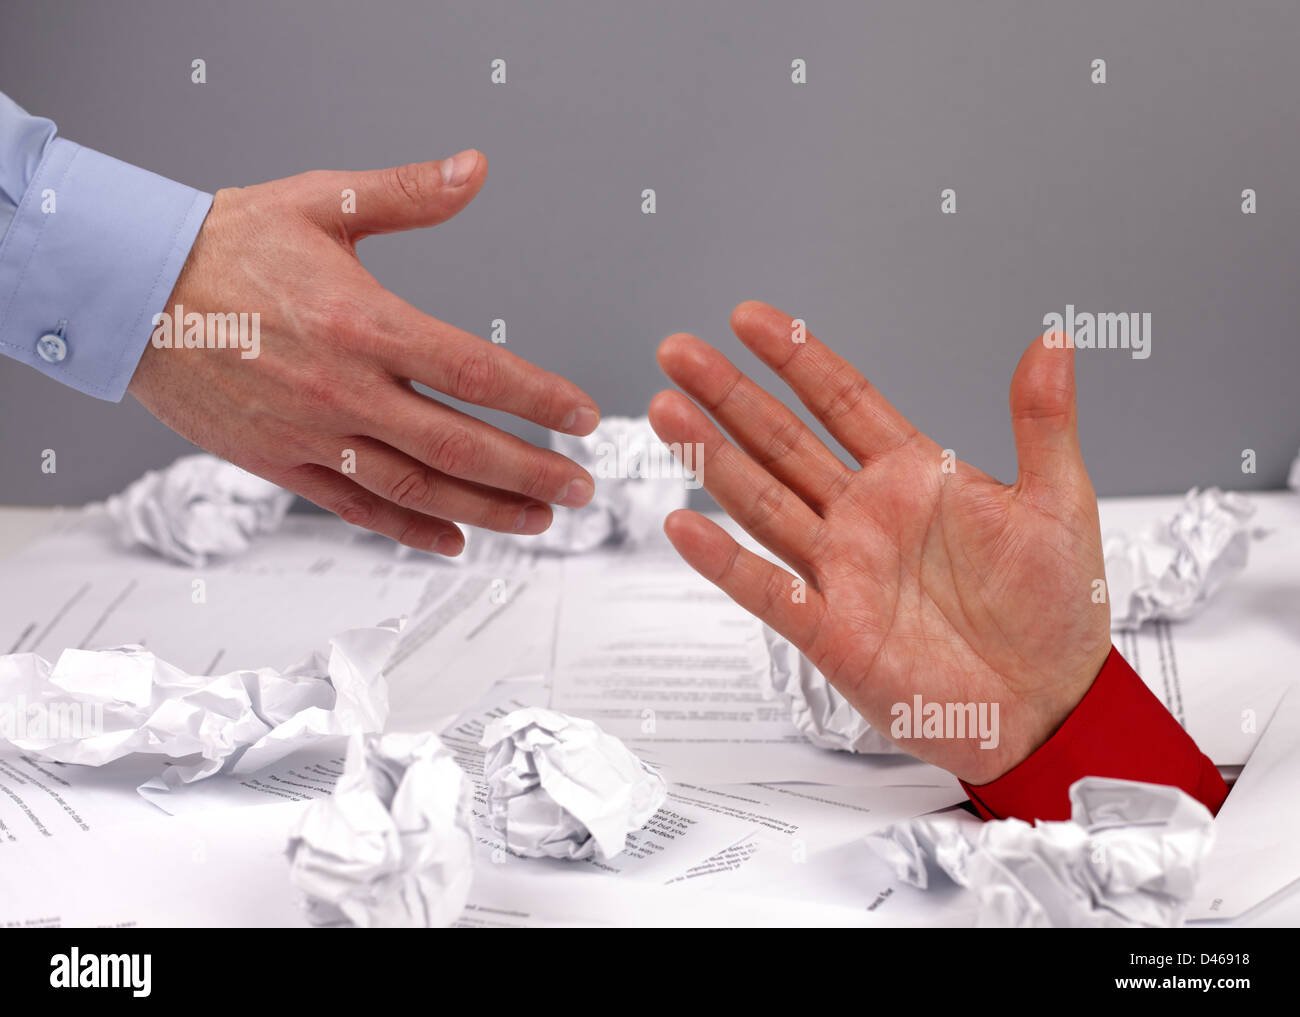 Reaching out for help - Stock Image